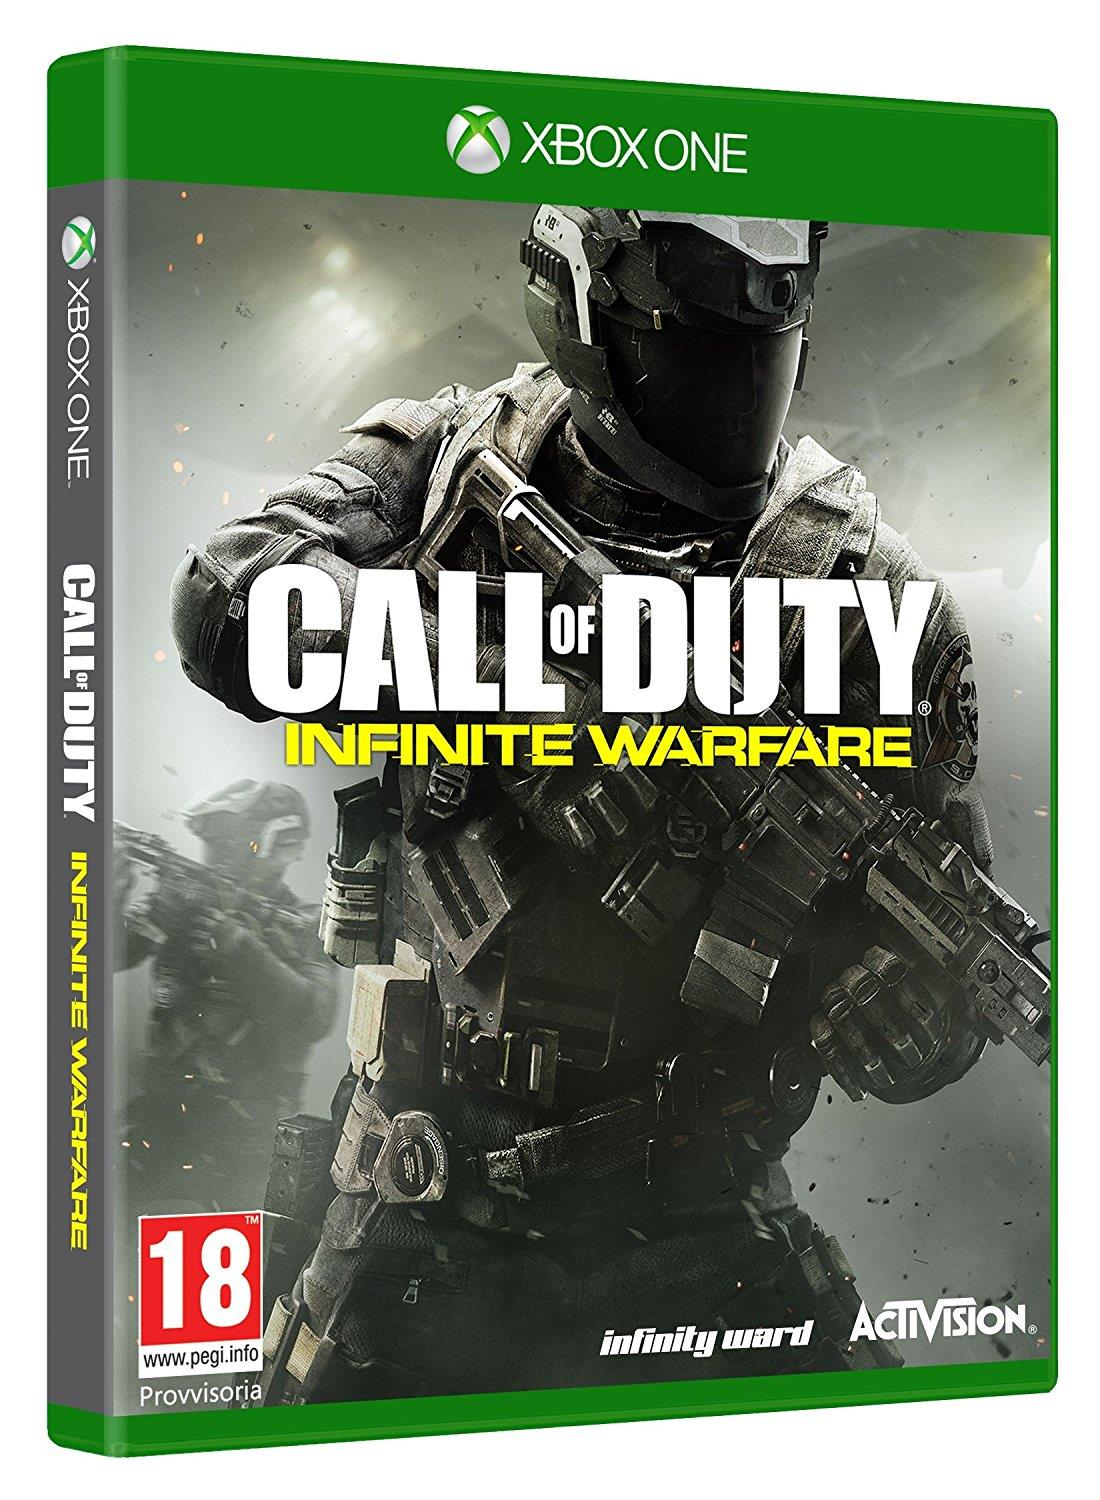 ACTIVISION GAME XBOX ONE MICROSOFTCALL OF DUTY INIFNITY WAREFARE